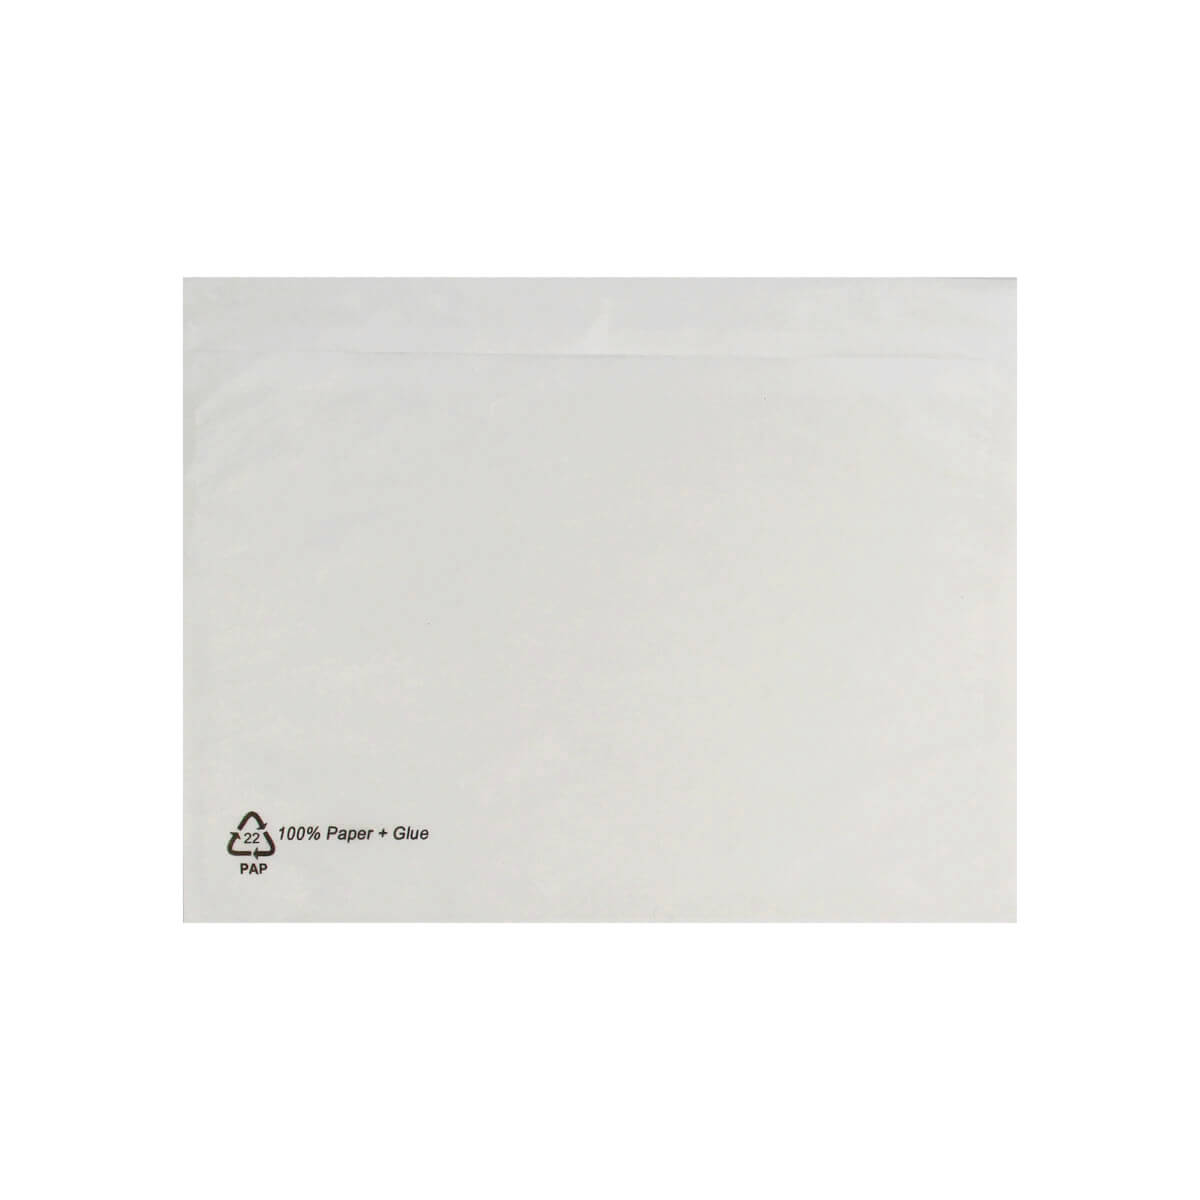 C7 RECYCLABLE PAPER DOCUMENTS ENCLOSED WALLETS (82 x 113mm)